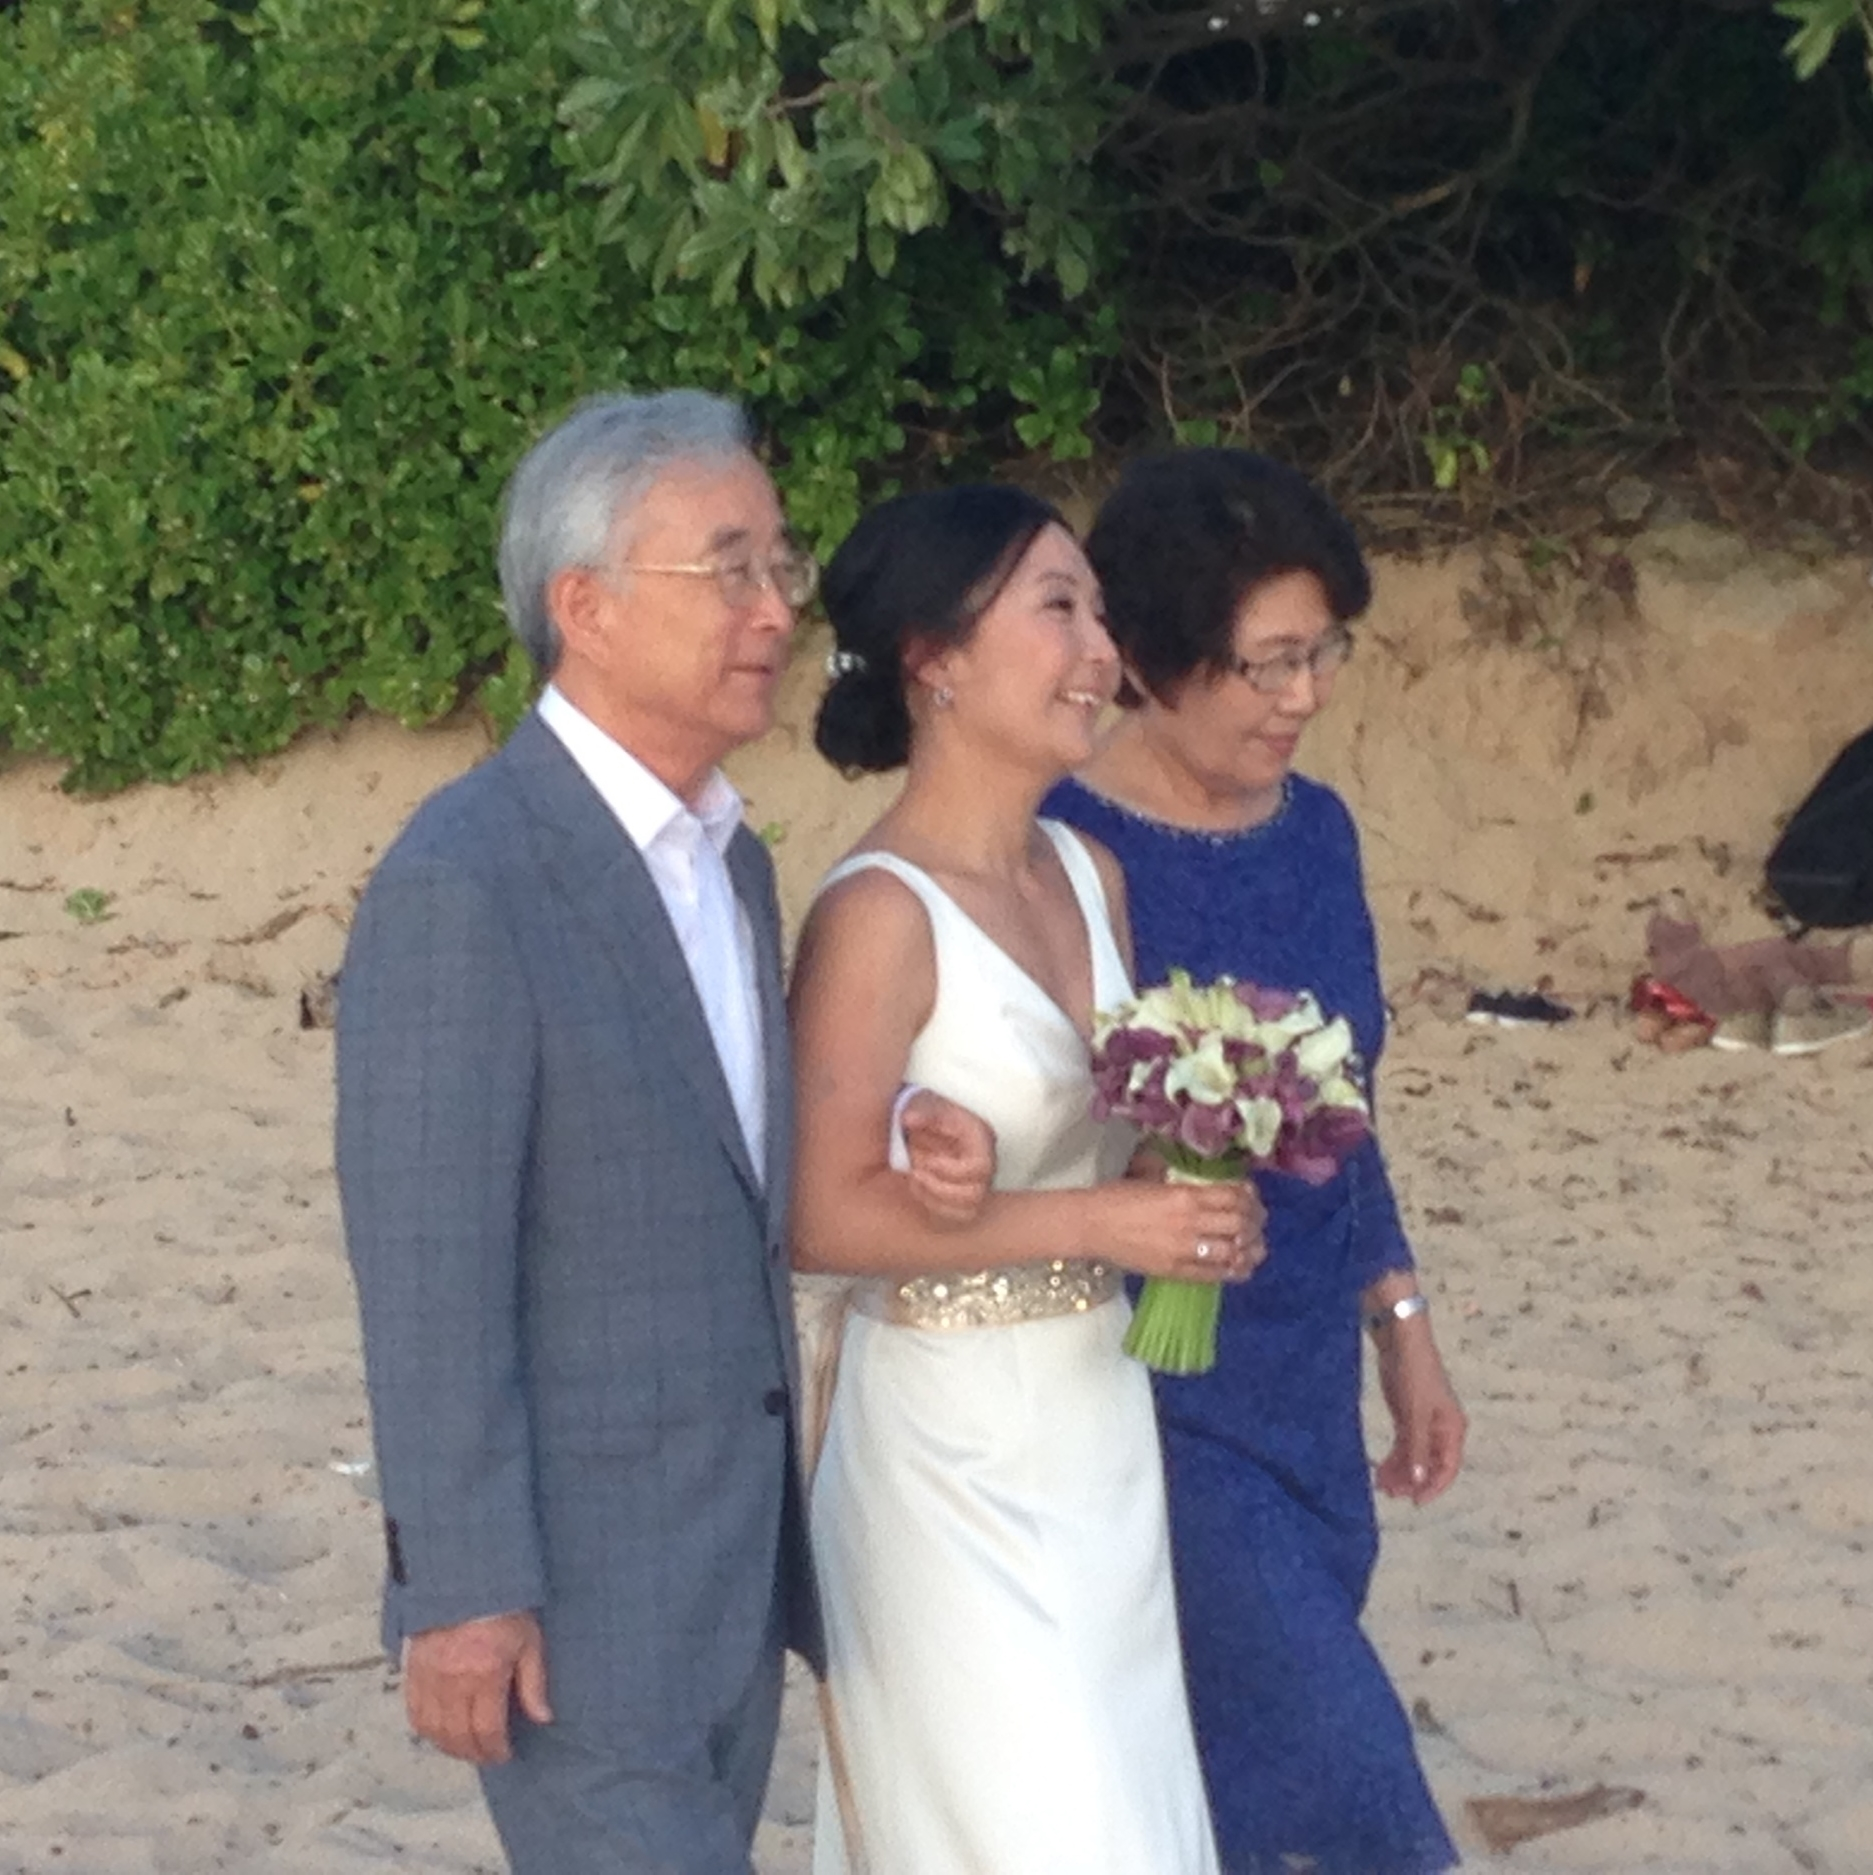 hawaii-beach-wedding-1.JPG